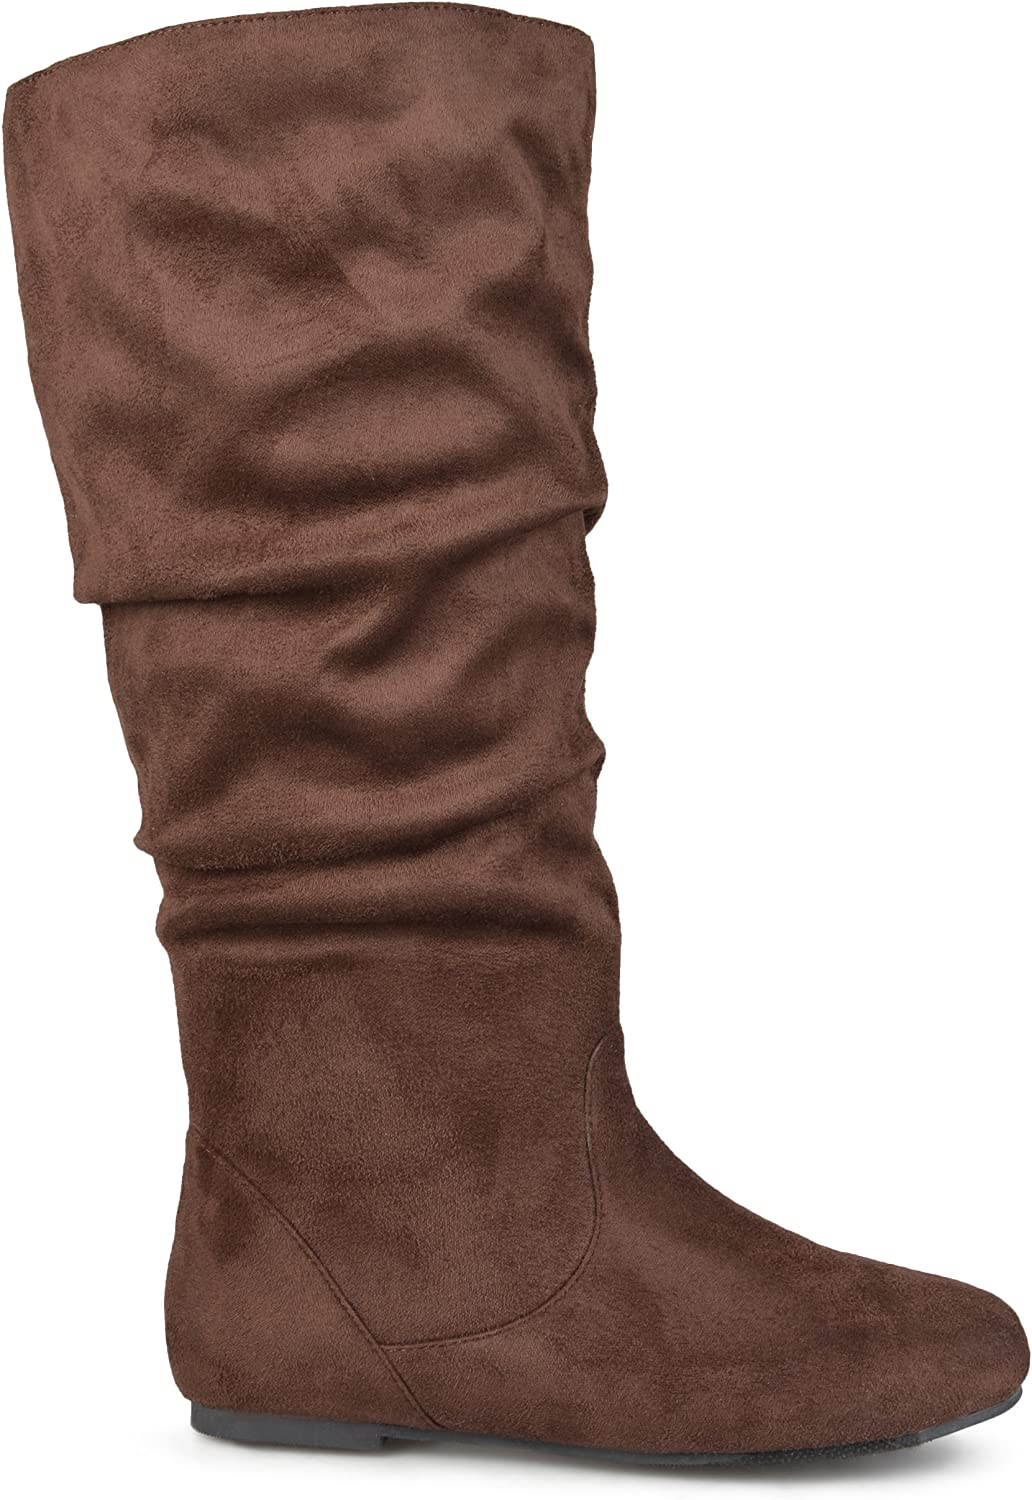 Brinley Co. Womens Regular Size and Wide-Calf Knee-High Slouch Microsuede Boot